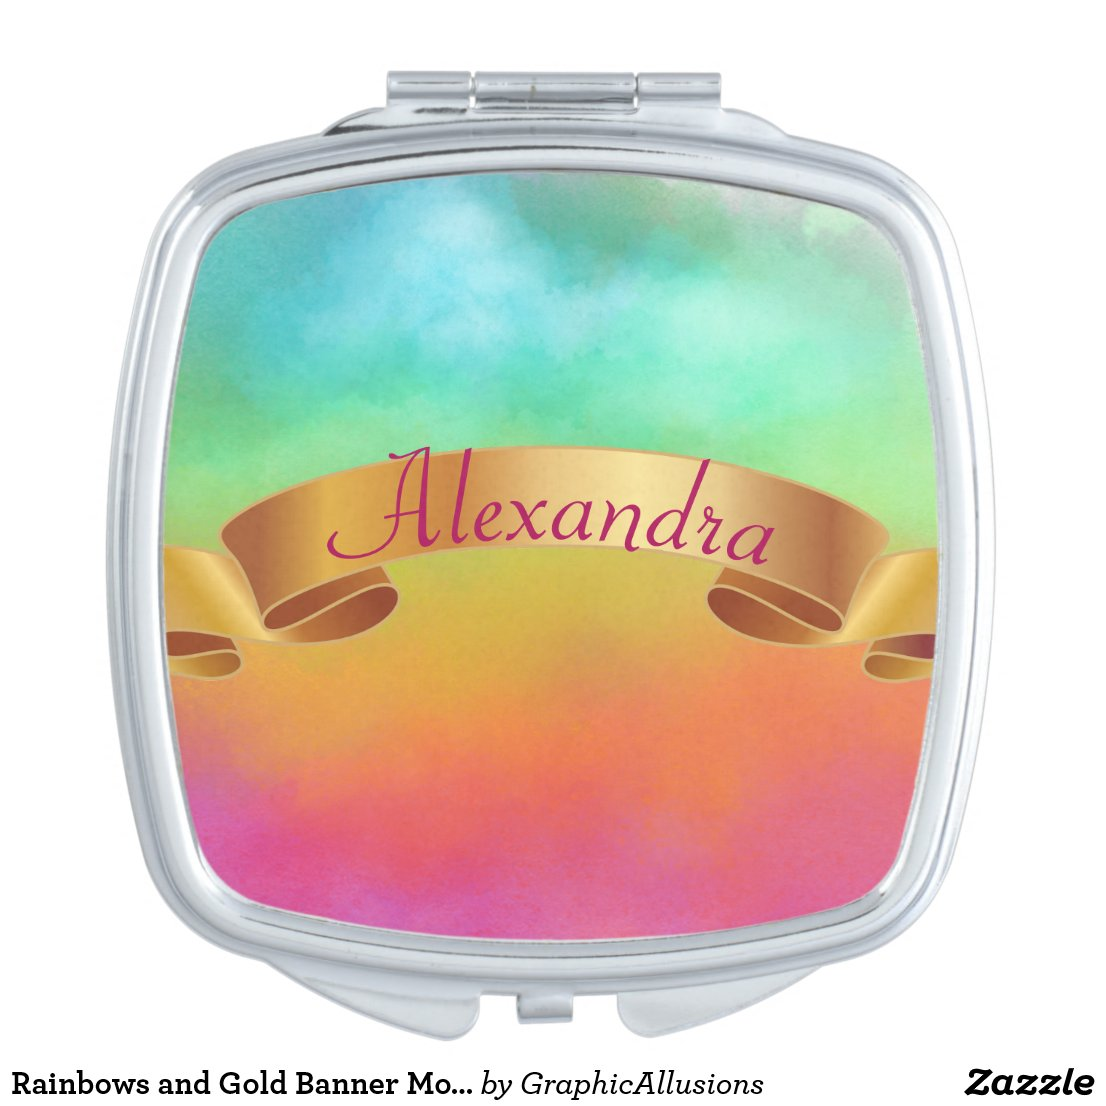 Rainbows and Gold Banner Monogram Compact Mirror